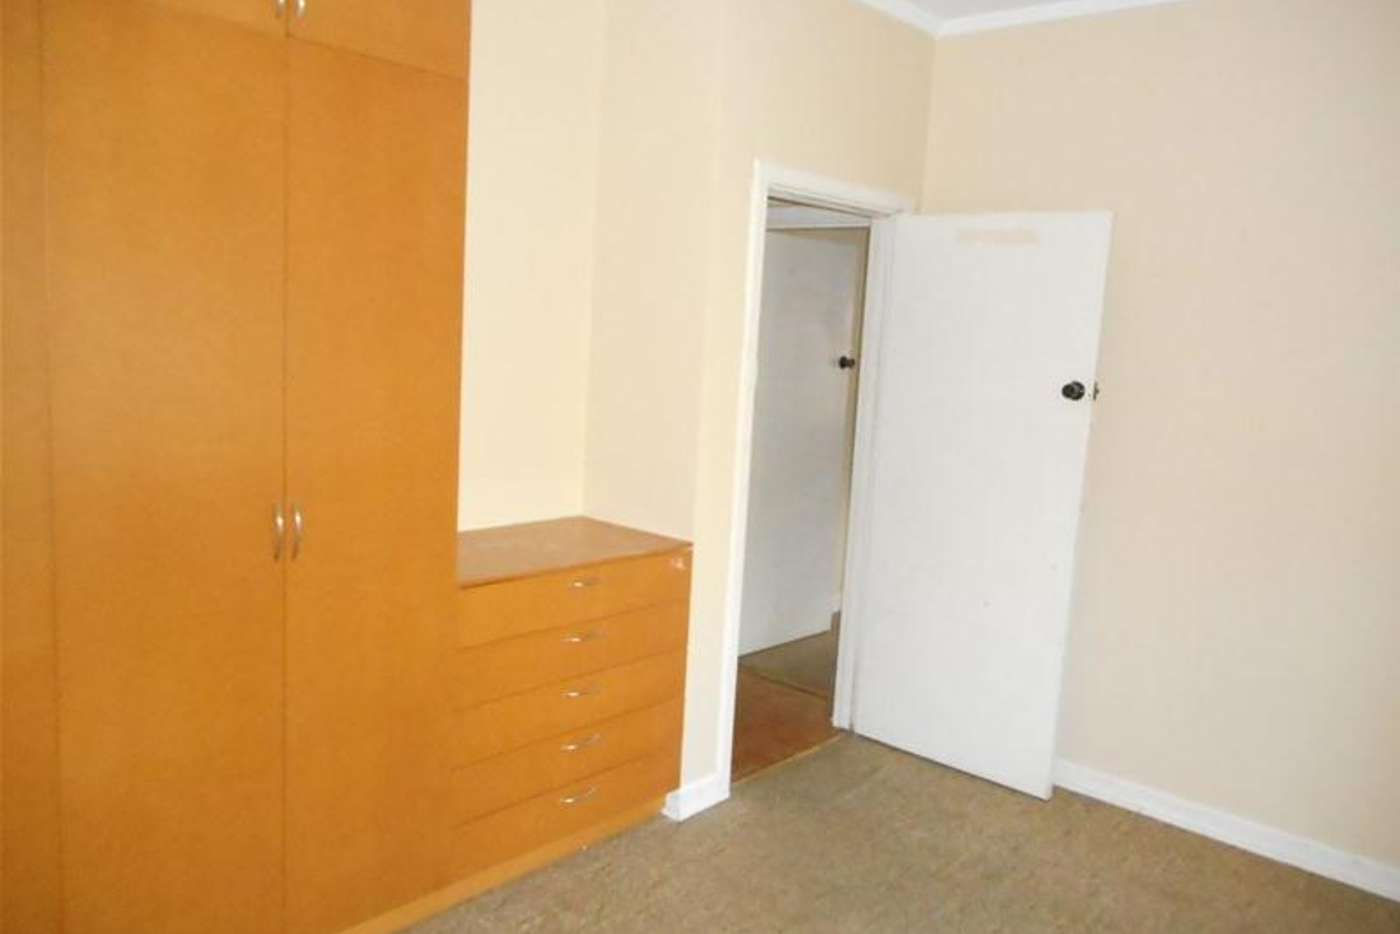 Sixth view of Homely house listing, 3 Chamberlain Avenue, Clarence Gardens SA 5039